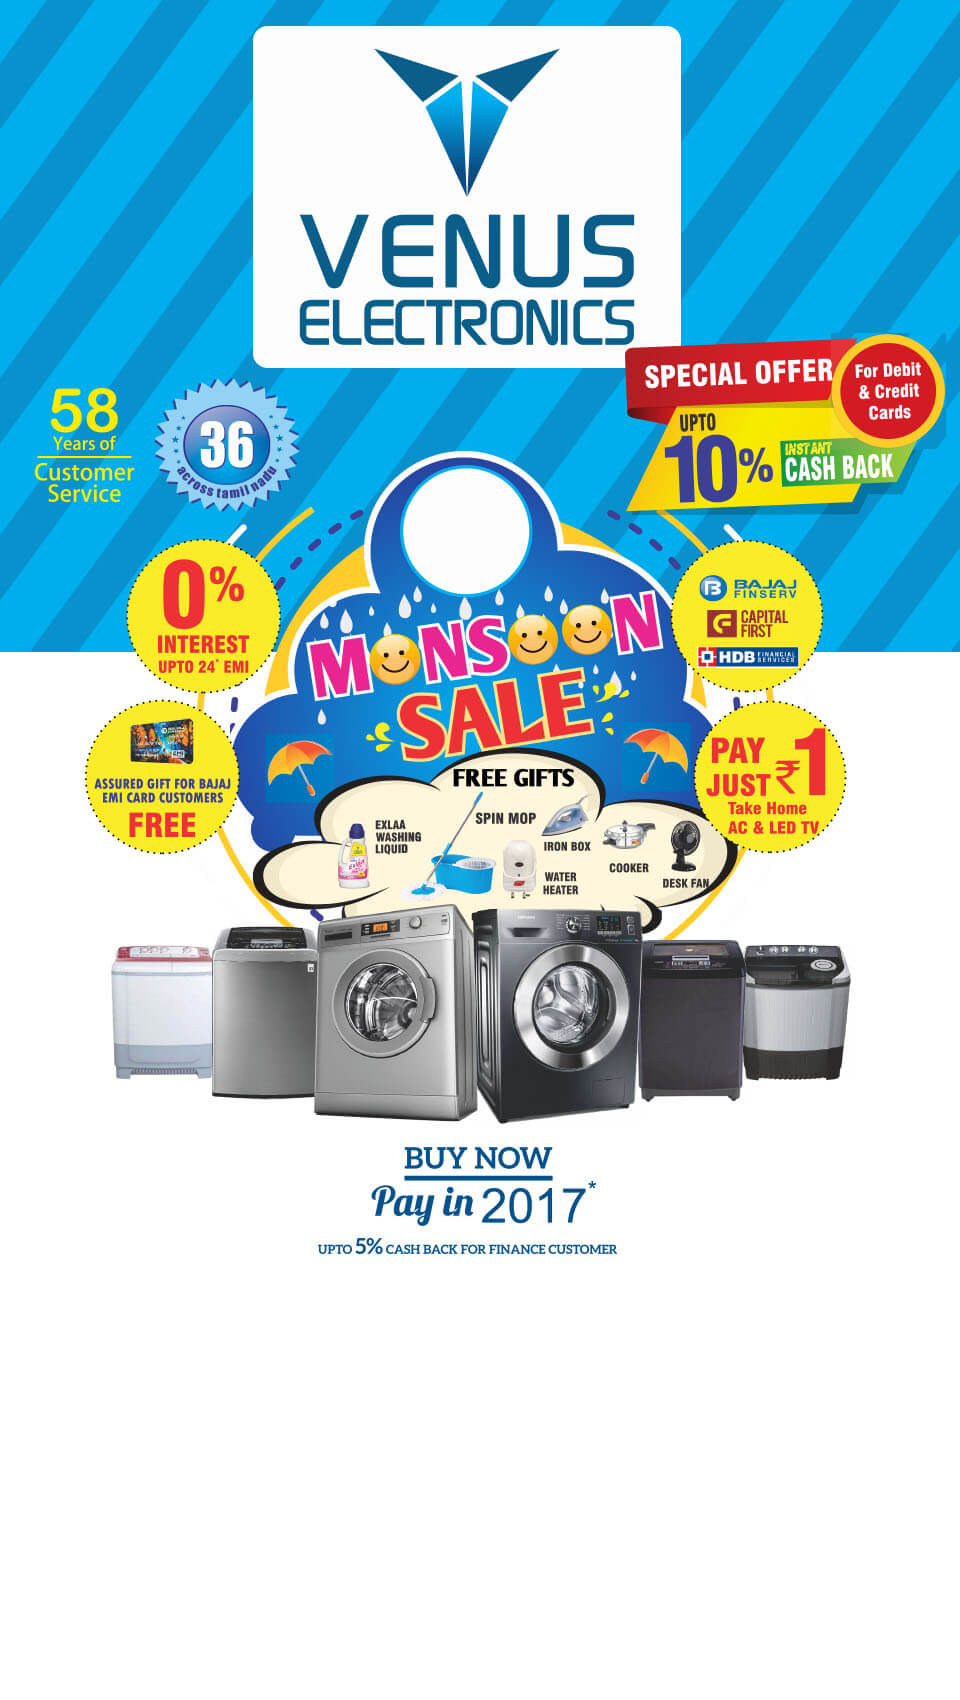 Offers - venuselectronics - buzztm - Venus Electronics is a comprehensive and high quality Dealer/Retailer of All Electronics, Home Appliances and Consumer Durables. Established in the year 1978, in a small way, has now spread to other major cities in Tamil Nadu.